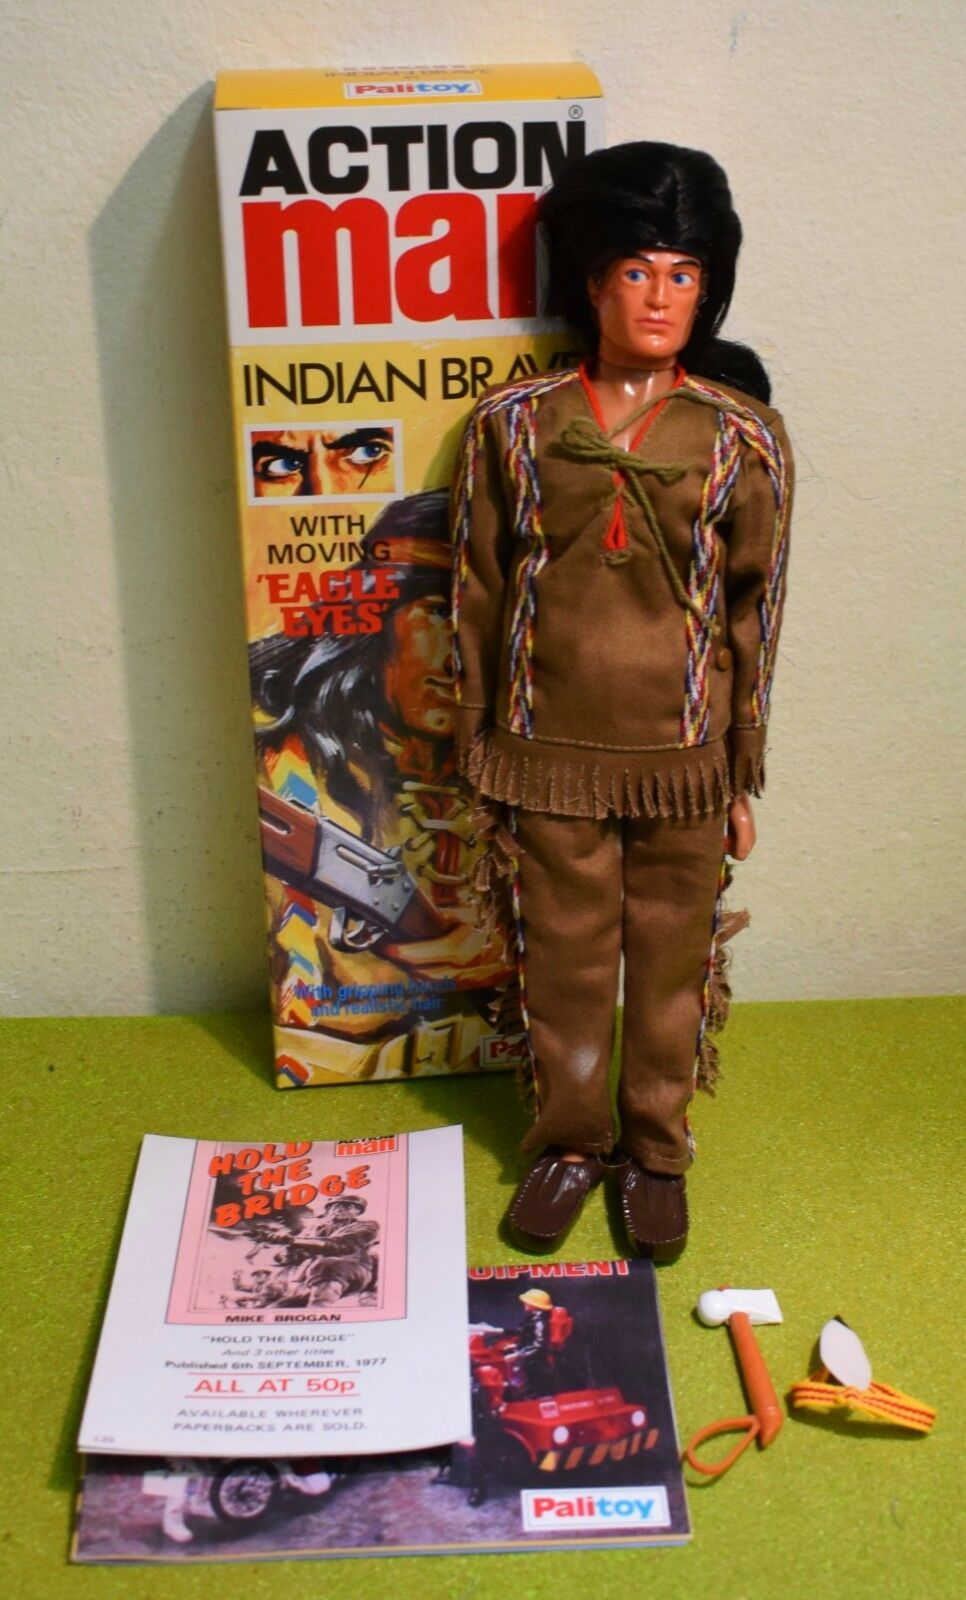 VINTAGE ACTION MAN 40th BOXED INDIAN braun HAIR EAGLE EYE GRIPPING HANDS